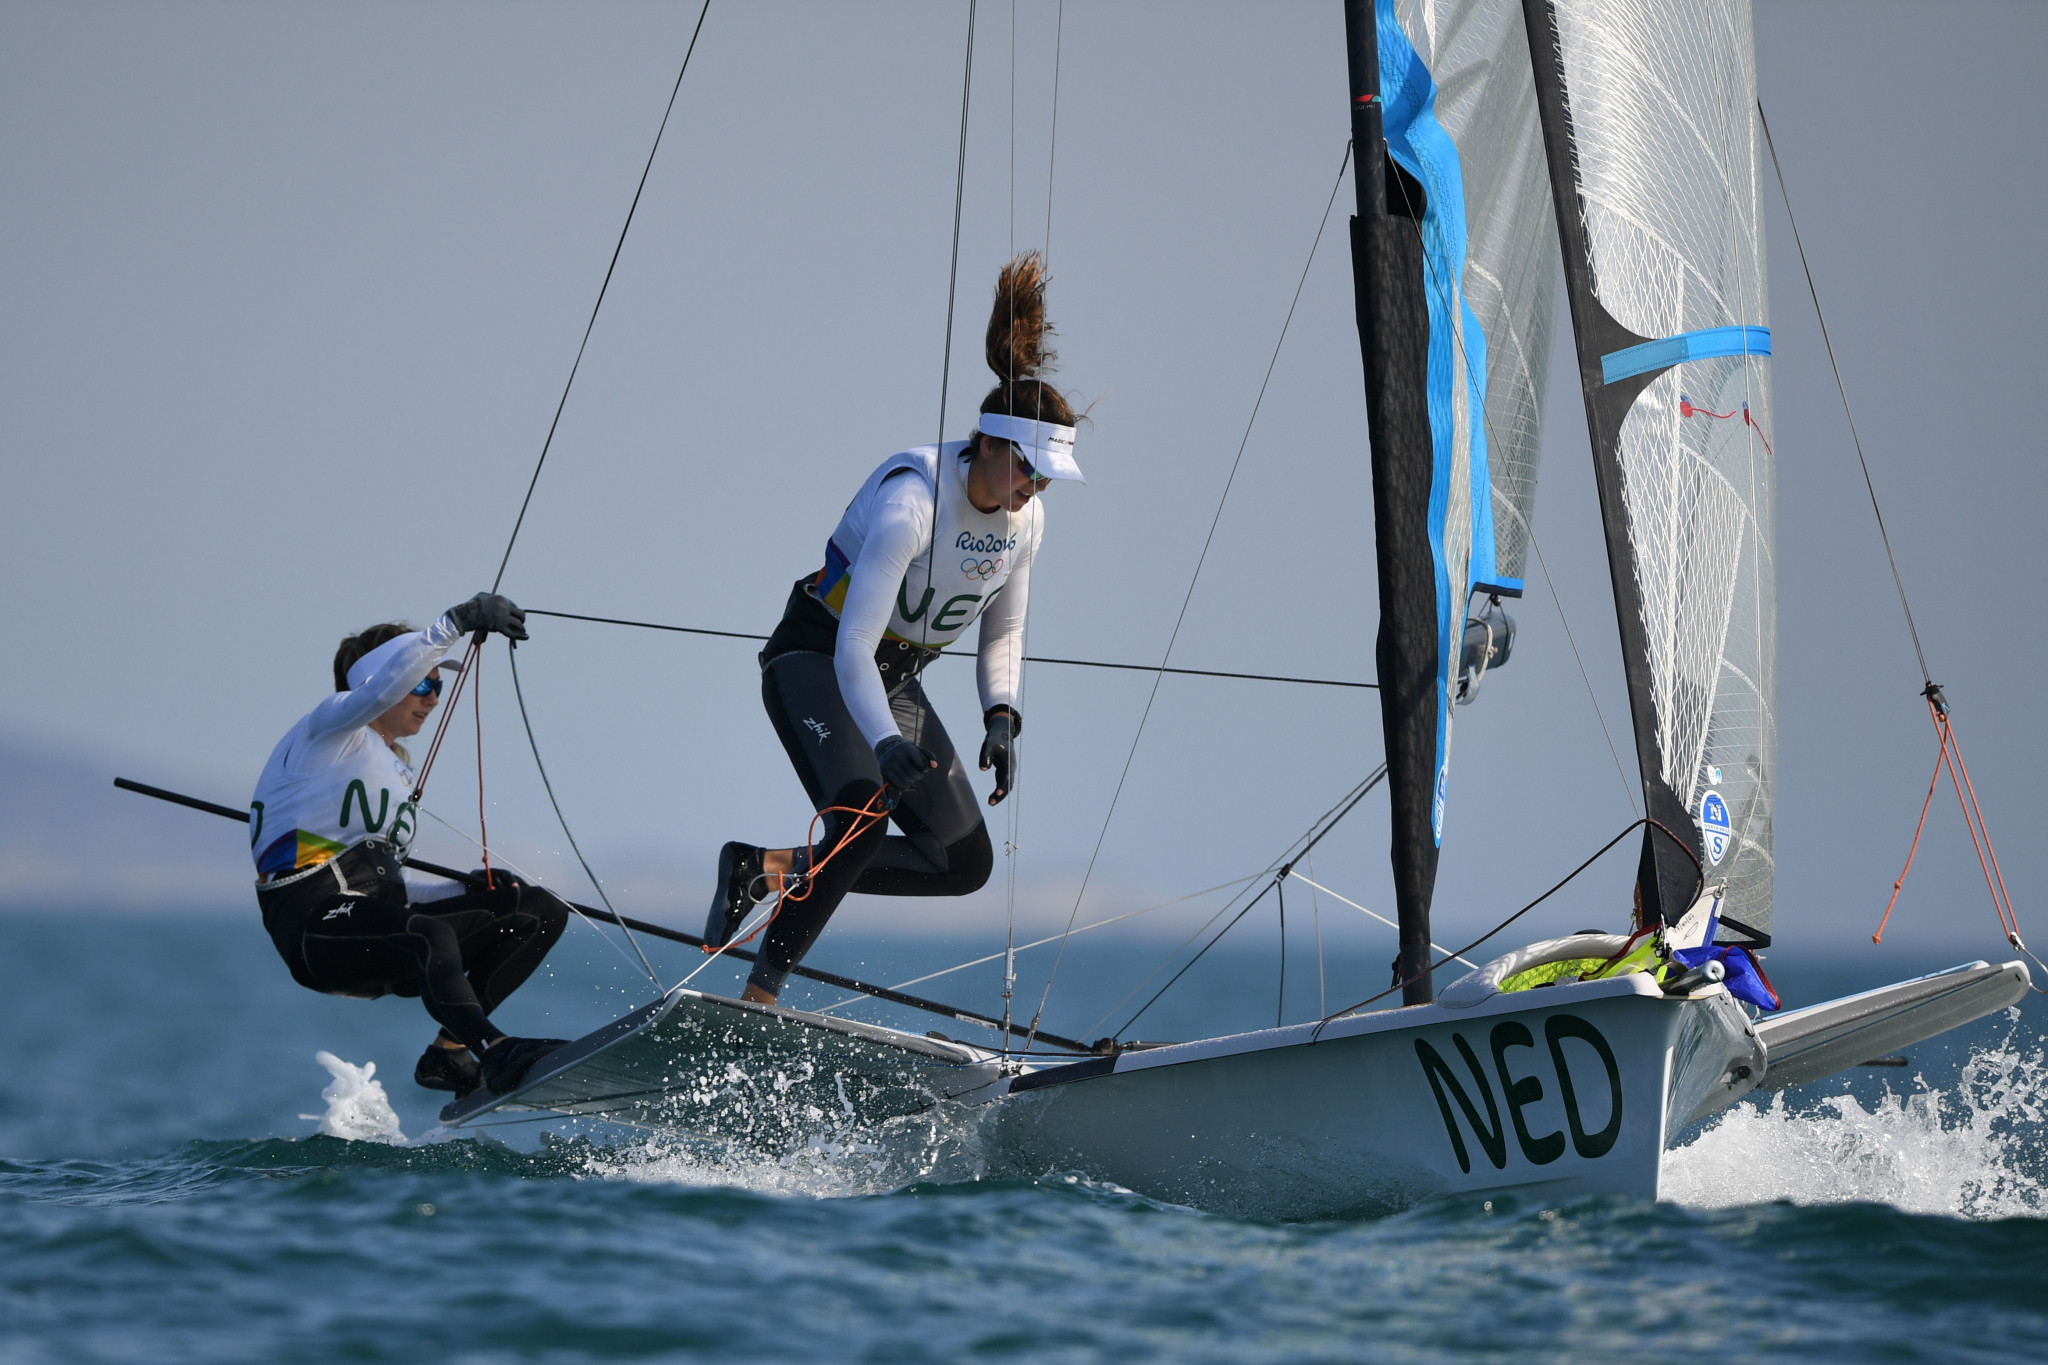 Dutch Tokyo 2020 choices flying high in 49er and 49erFX at World Sailing Cup in Medemblik